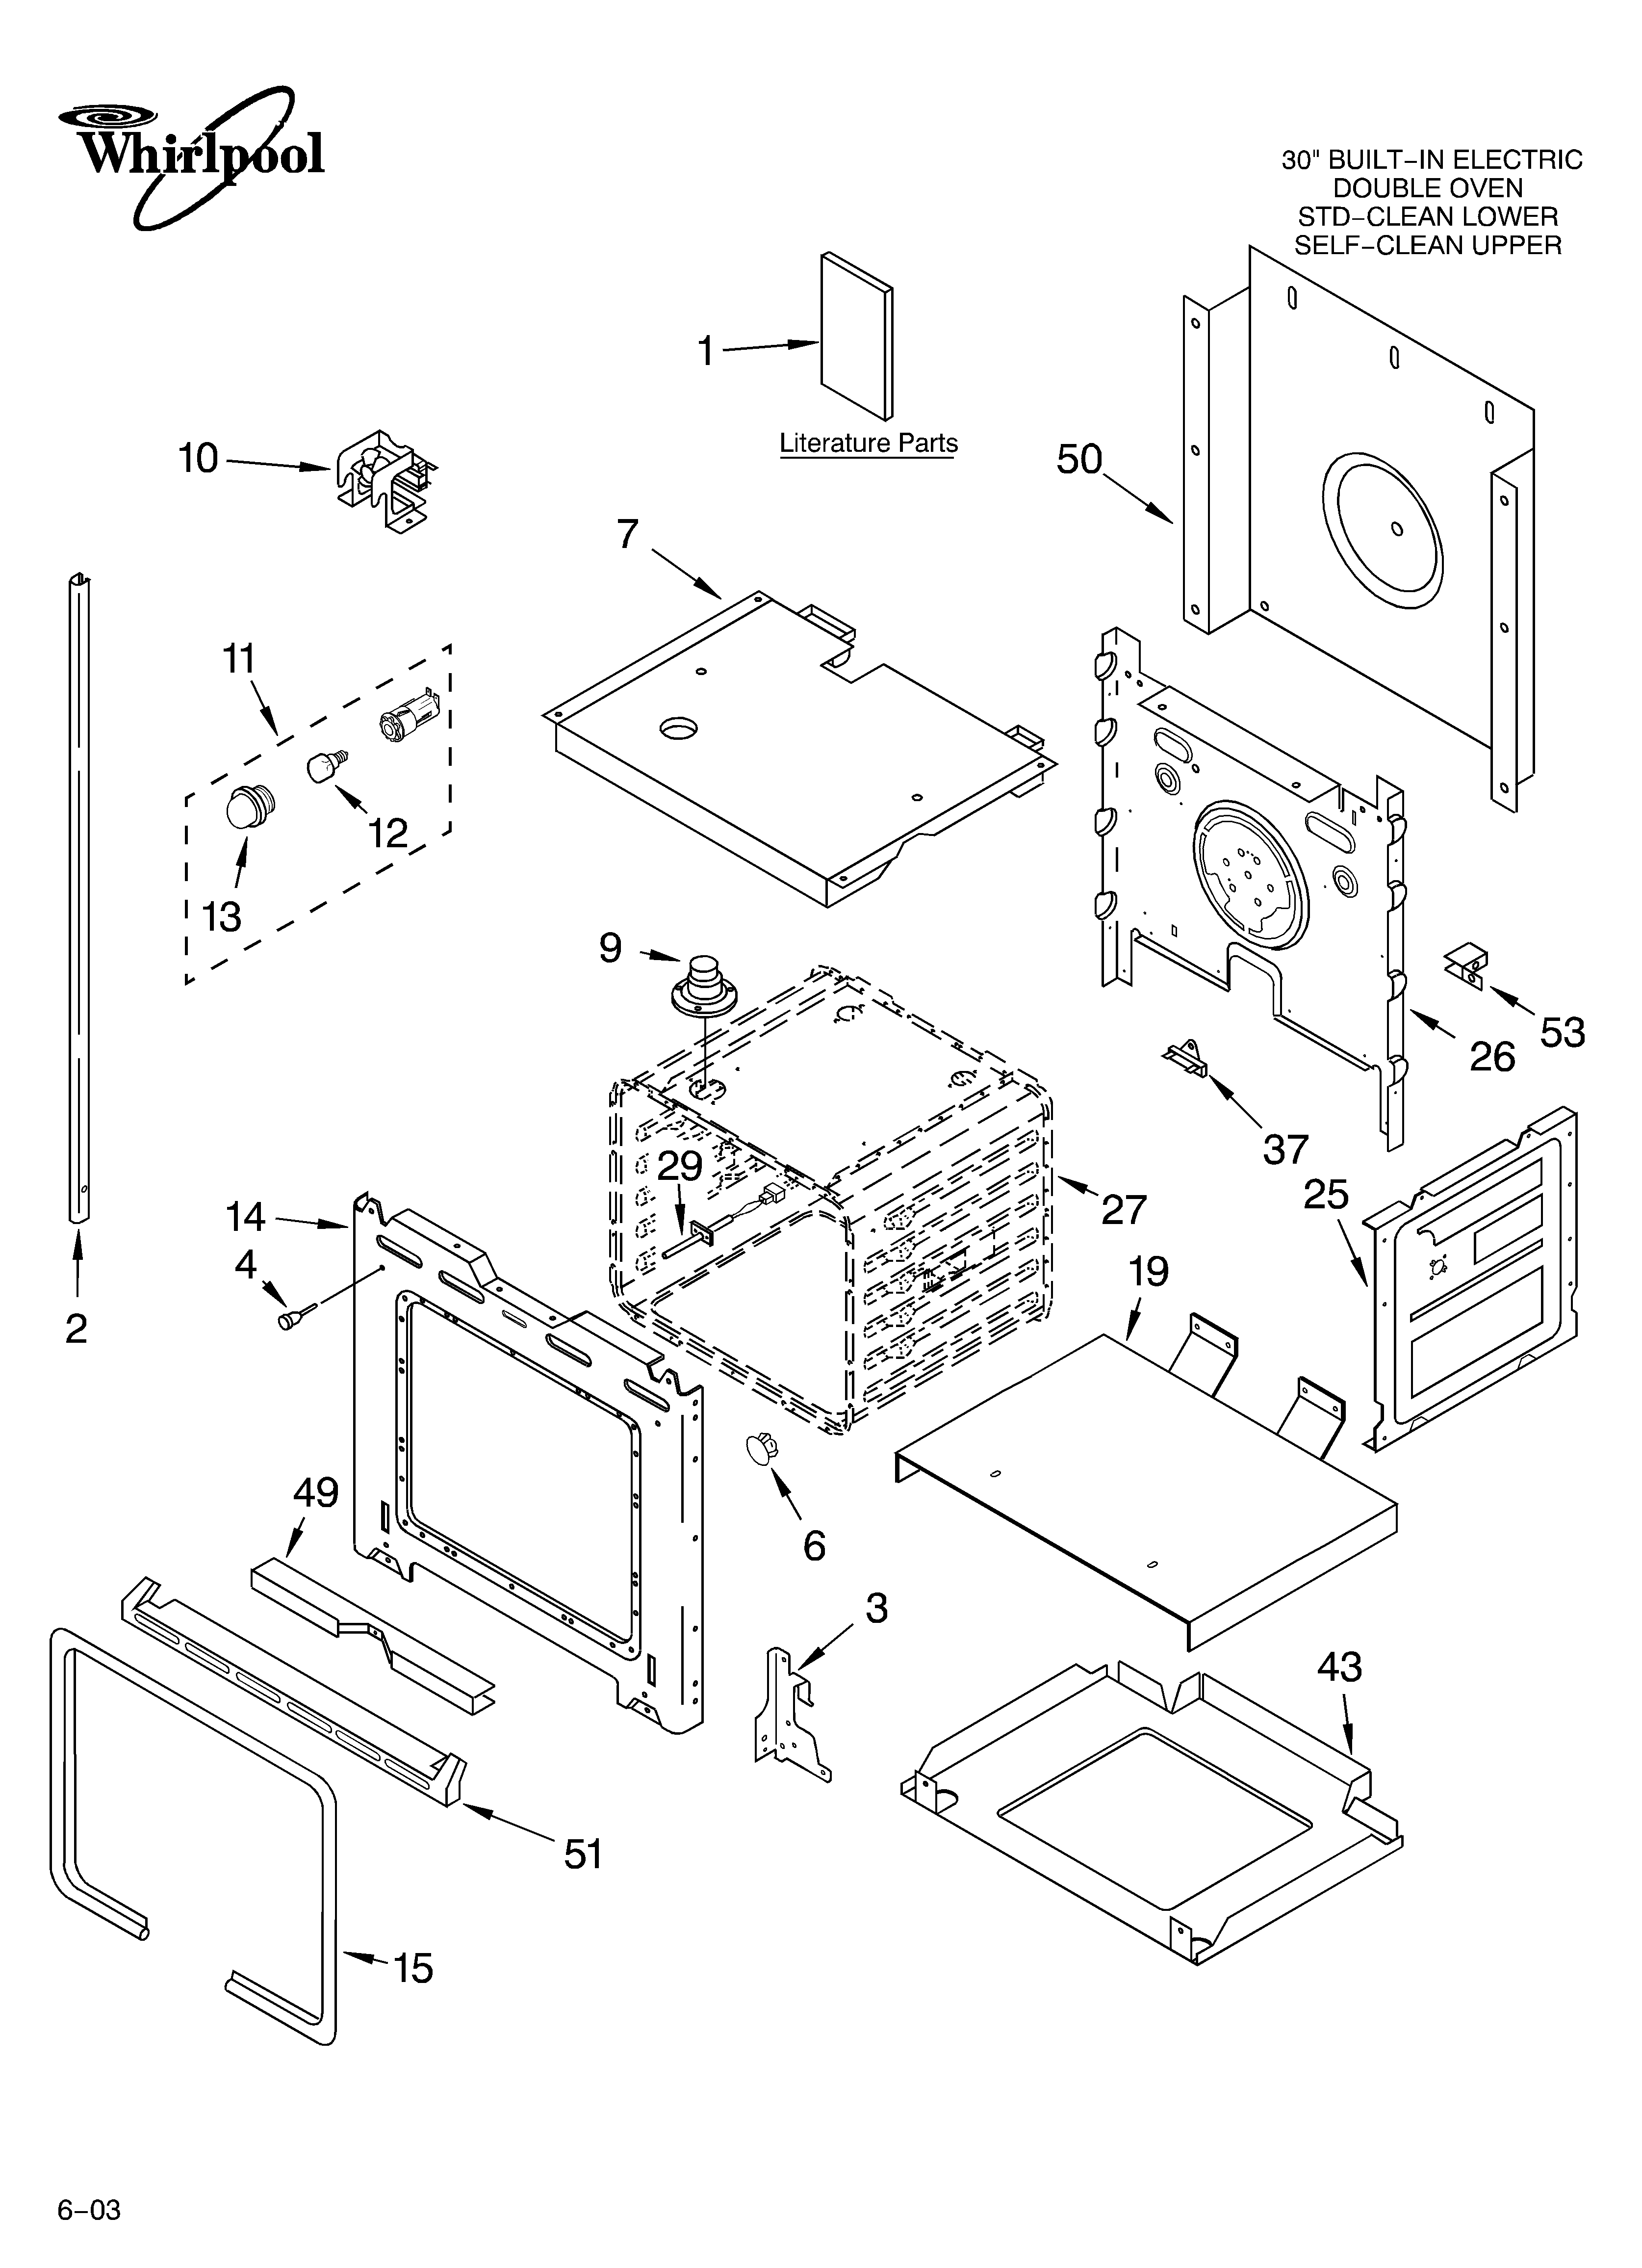 wiring diagram for whirlpool electric oven